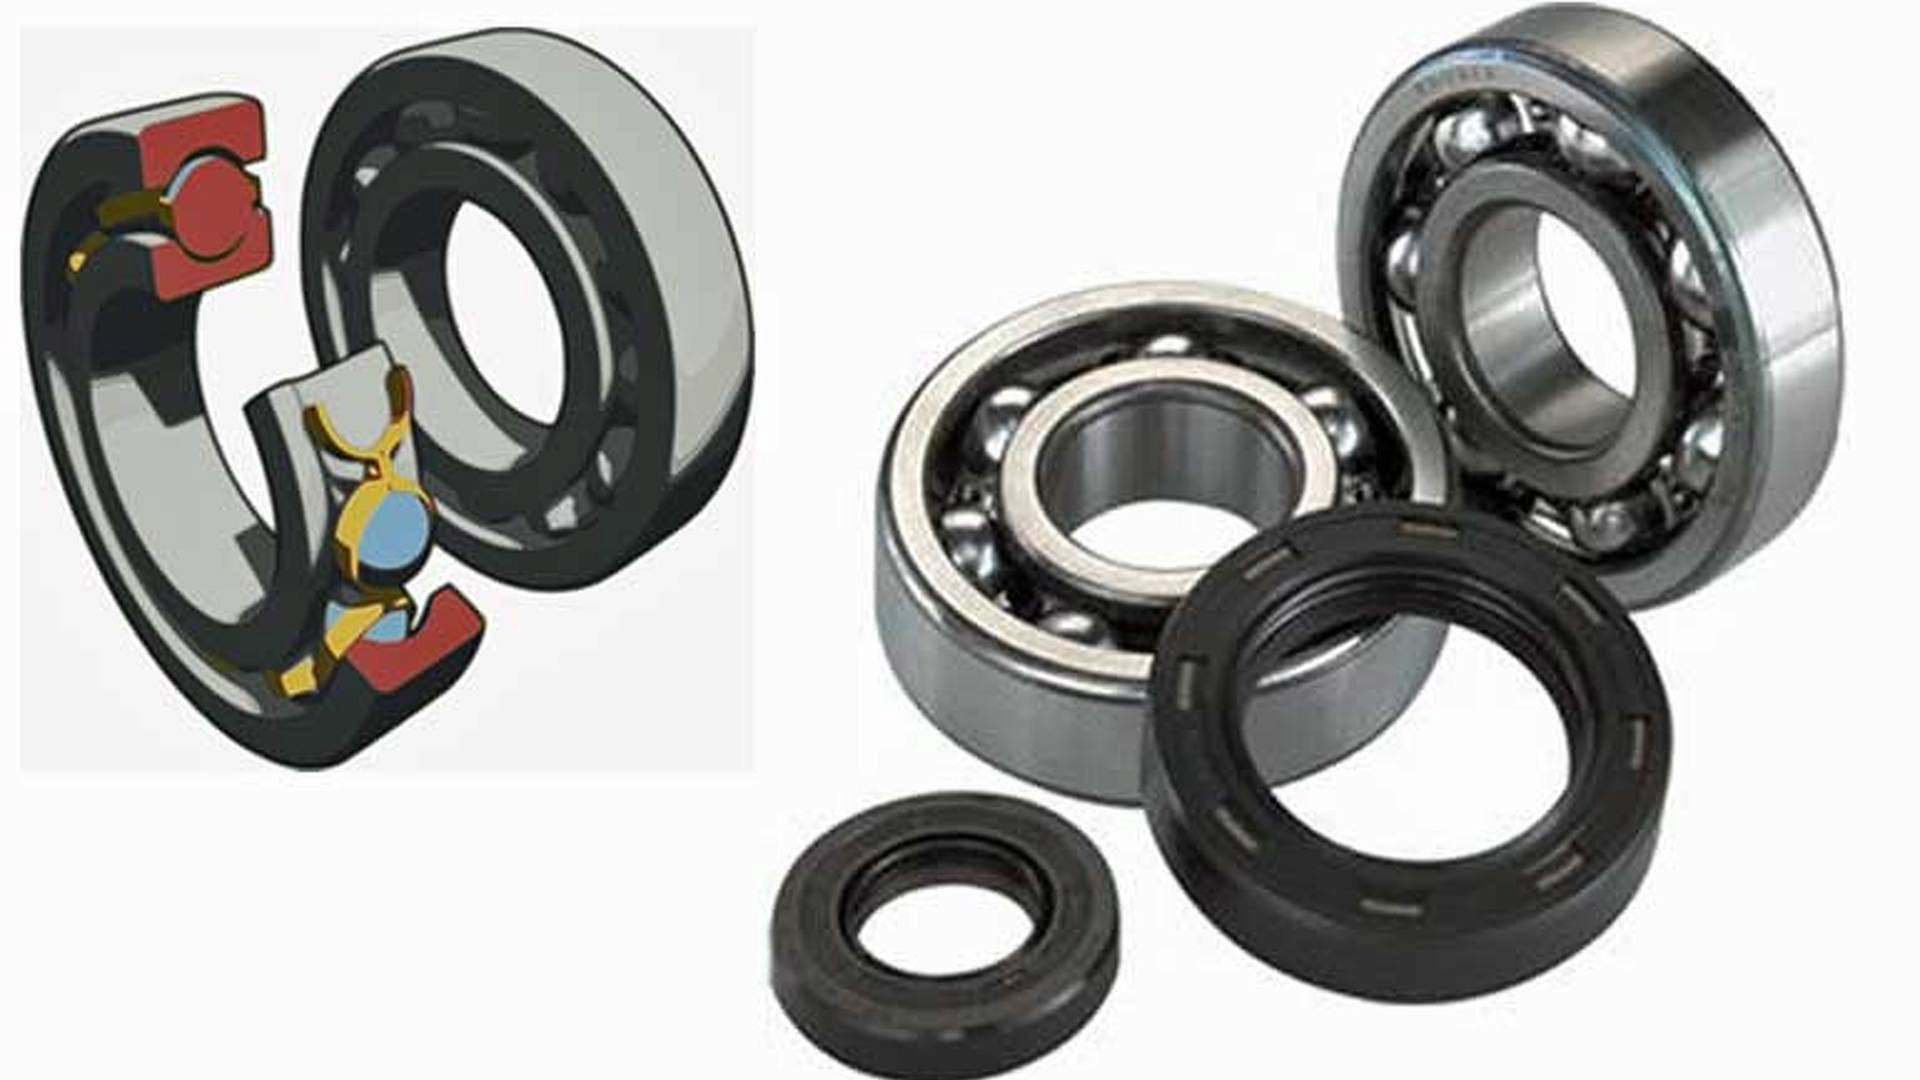 What You Need to Know About Wheel Bearings